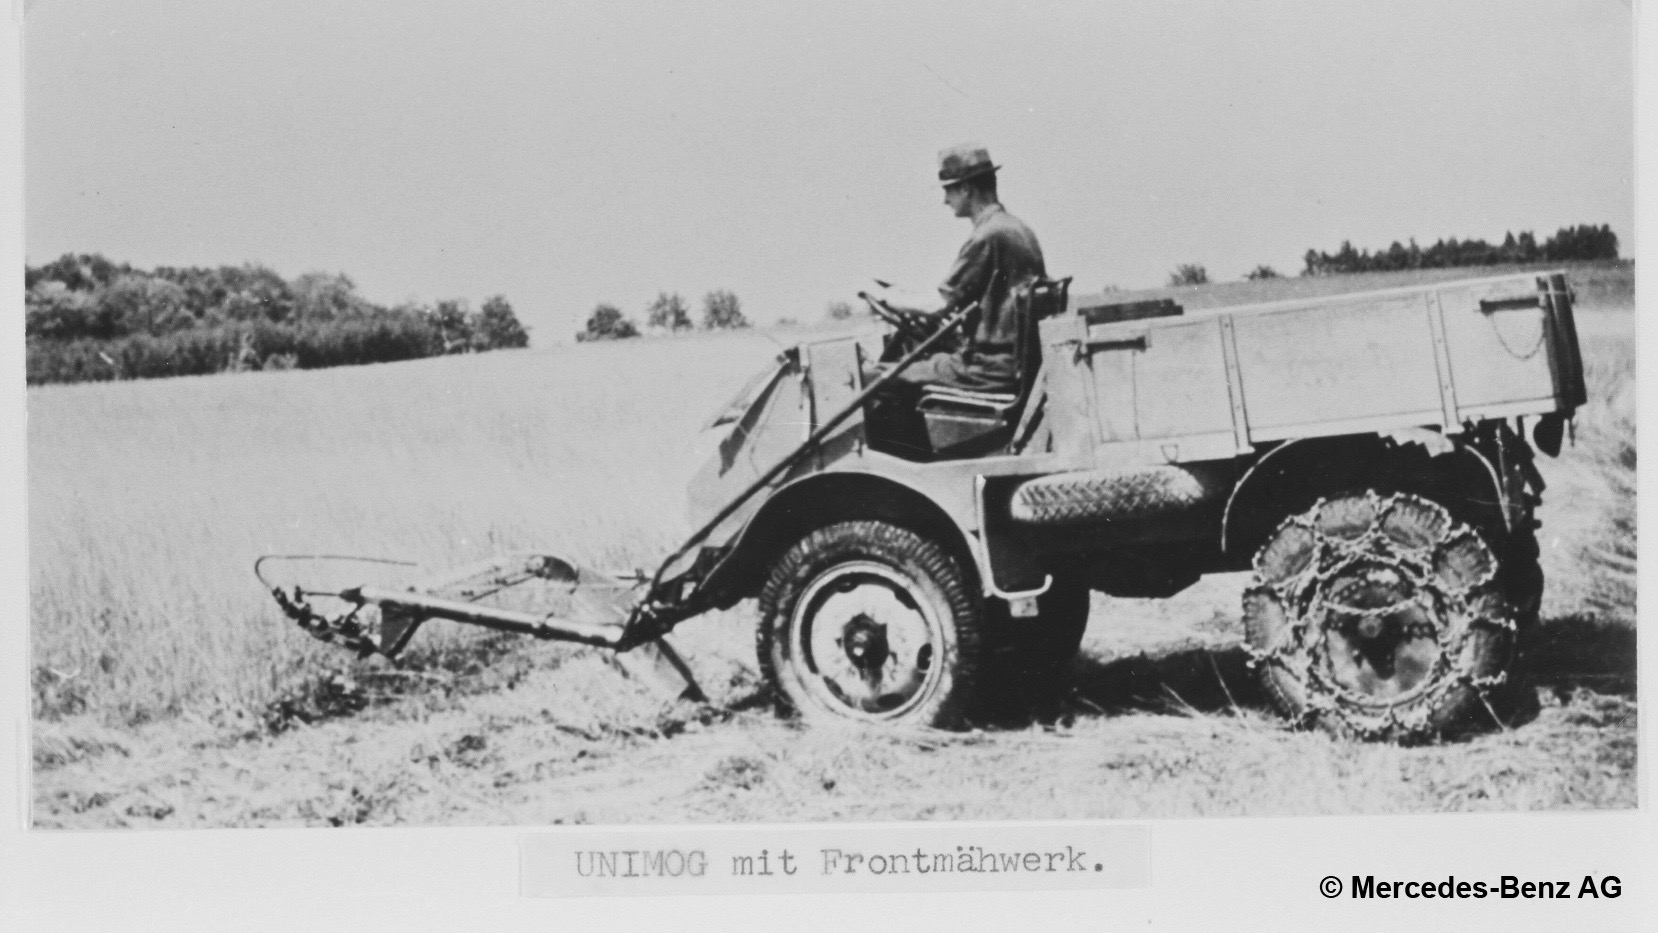 Deep dive: The Mercedes-Benz Unimog was originally meant to be a tractor